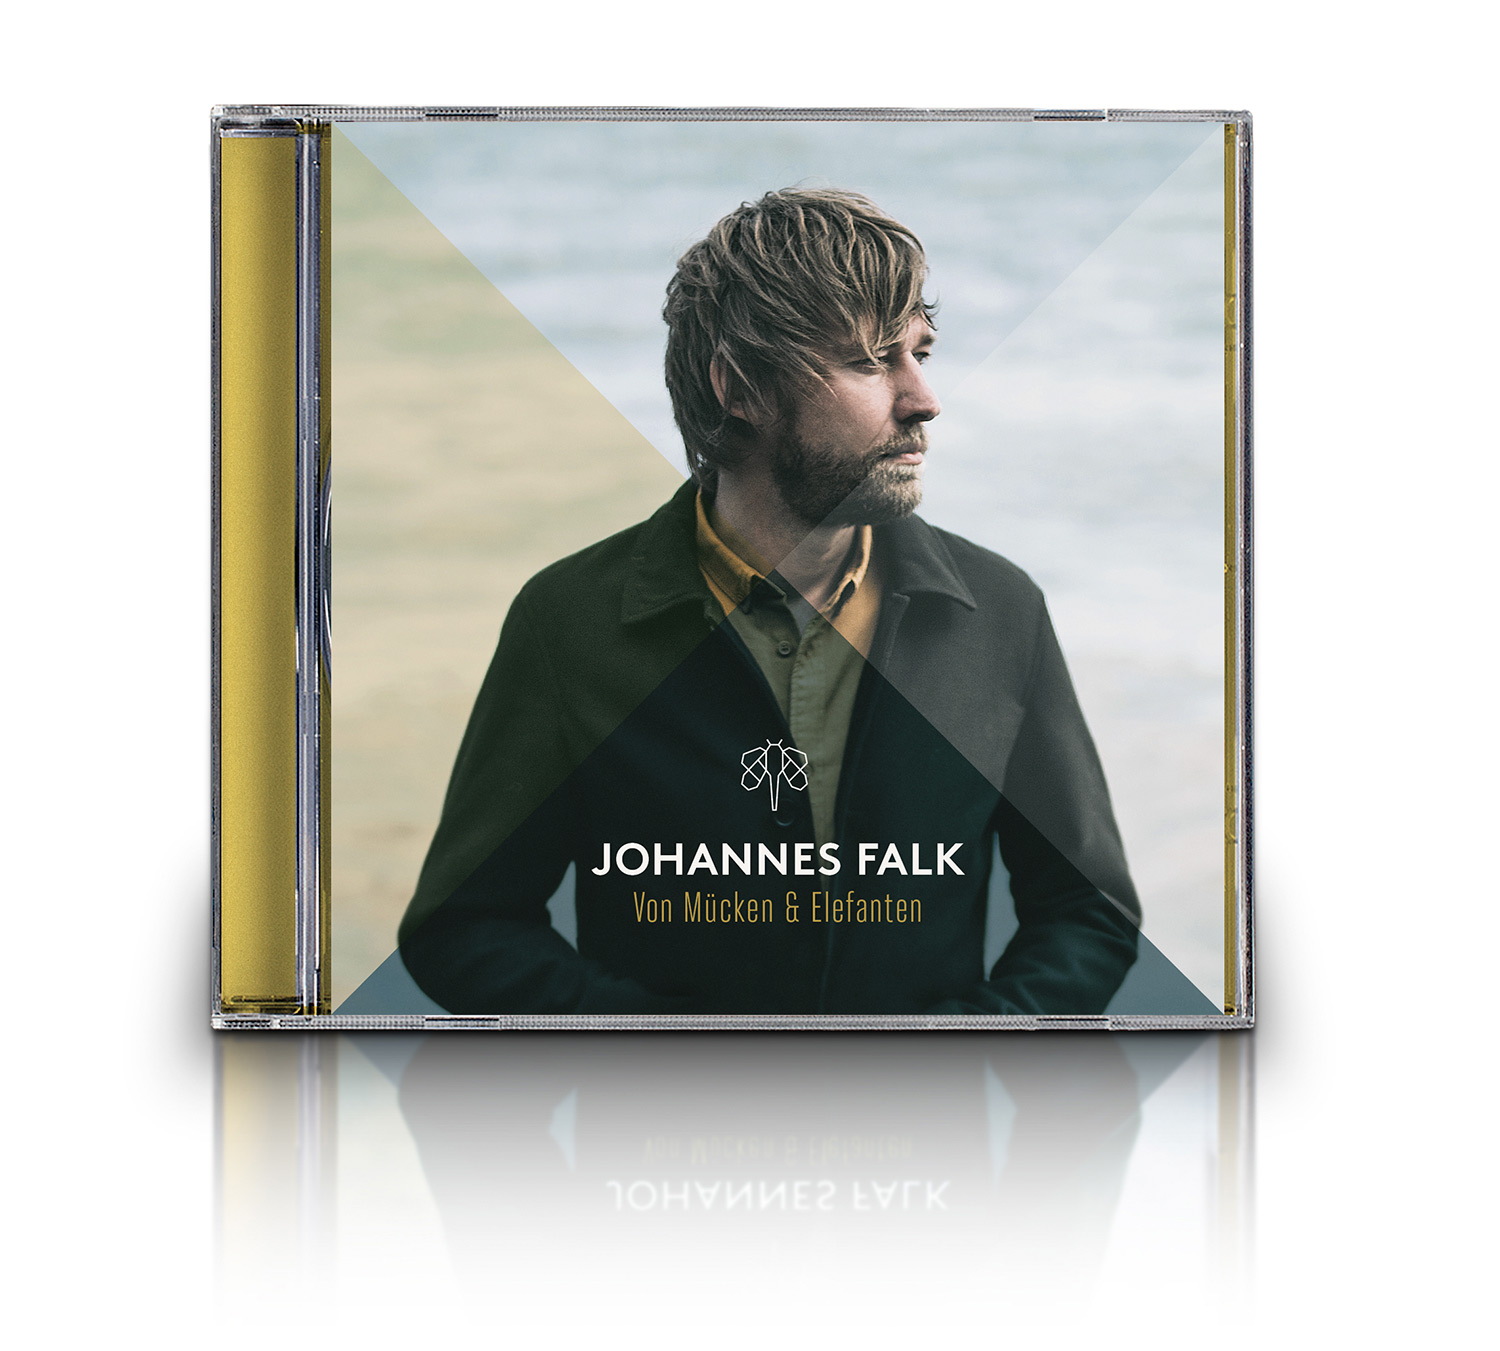 JOHANNESFALK_MuE_CD_Mockup-edit.jpg